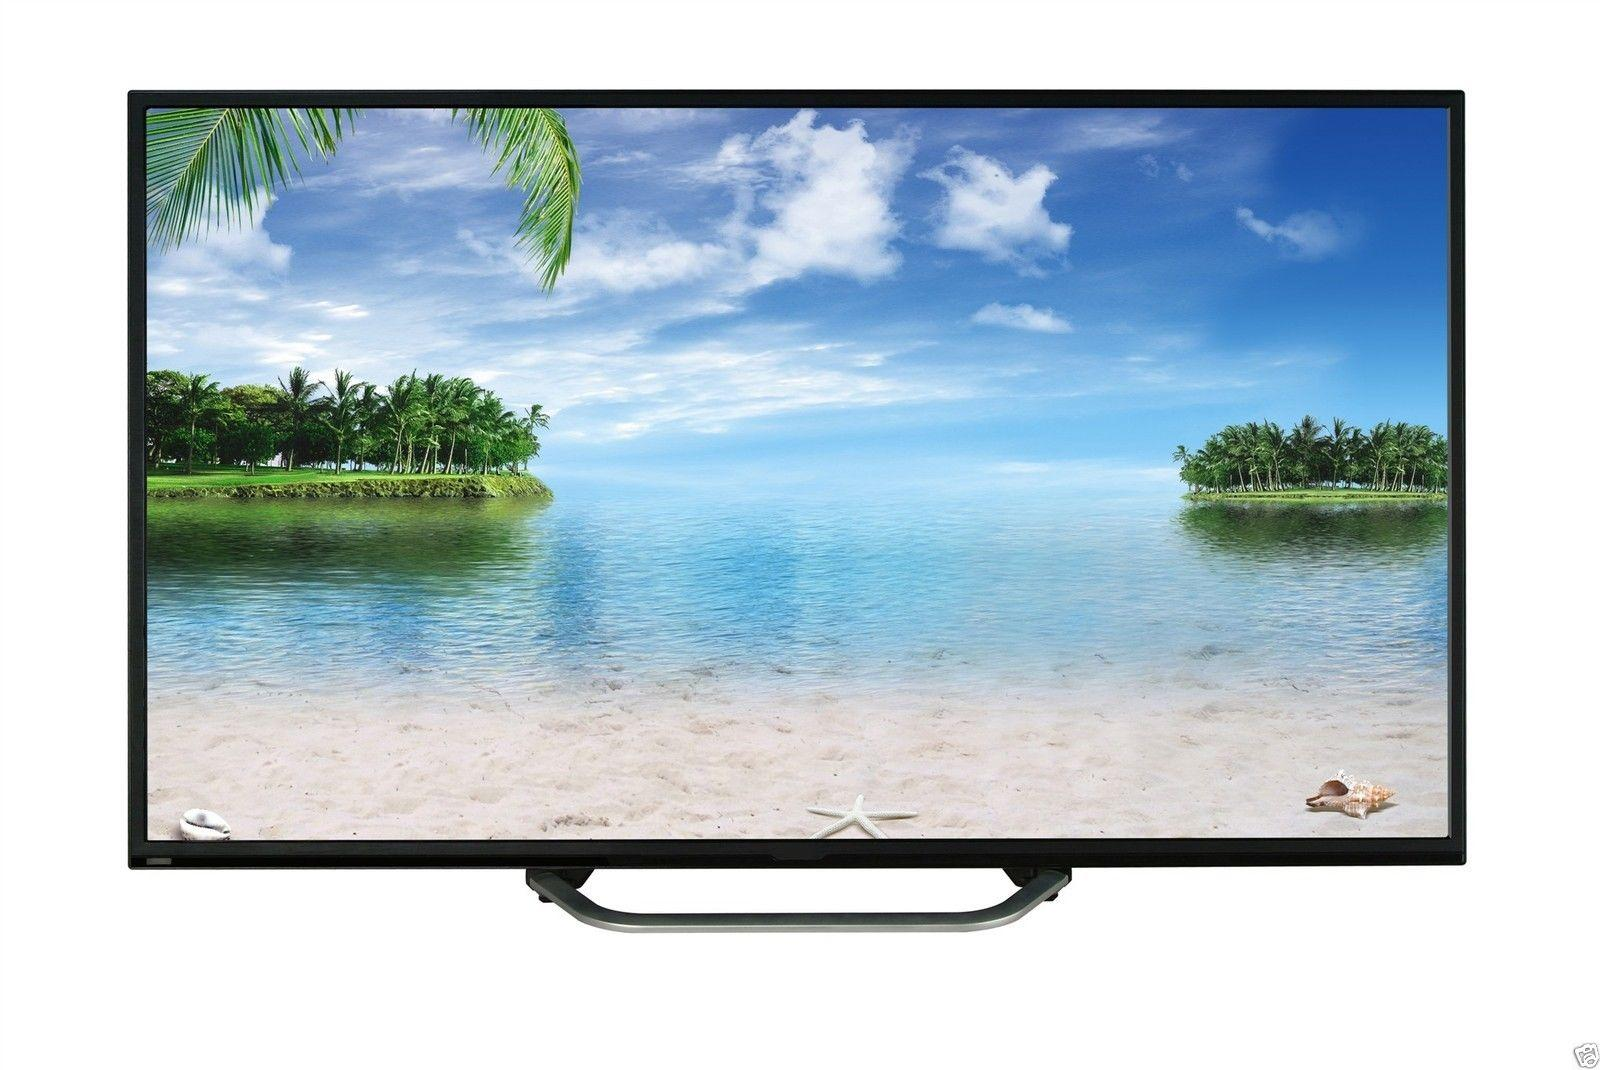 Proscan PLDED5068A 50-Inch LED 1080p TV